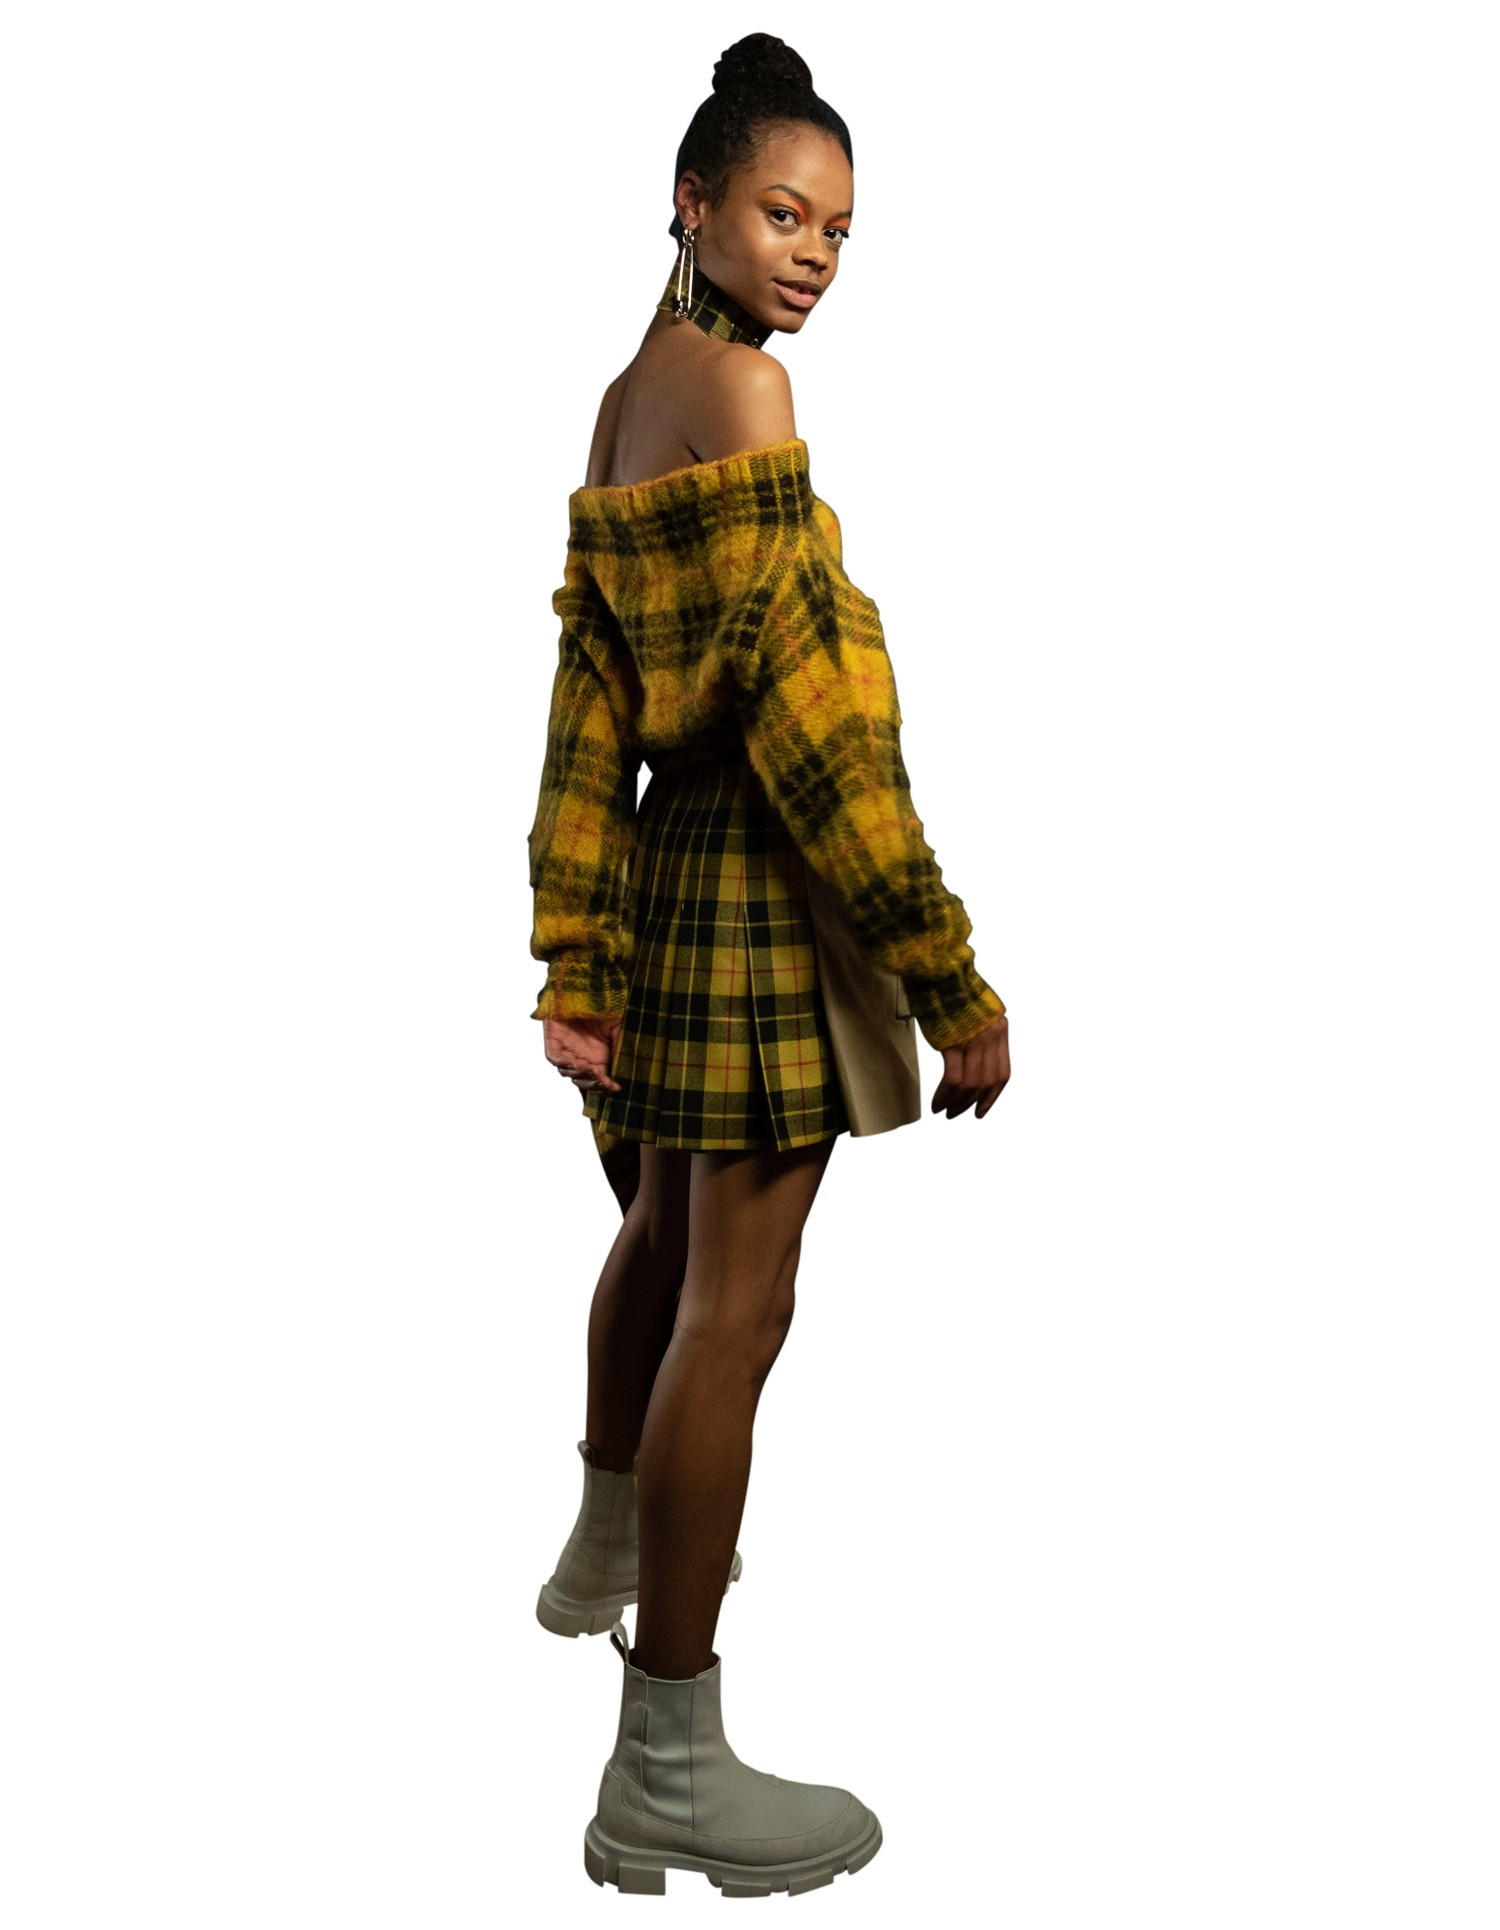 MONSE Tartan Pleated Cargo Skirt on Model Side View